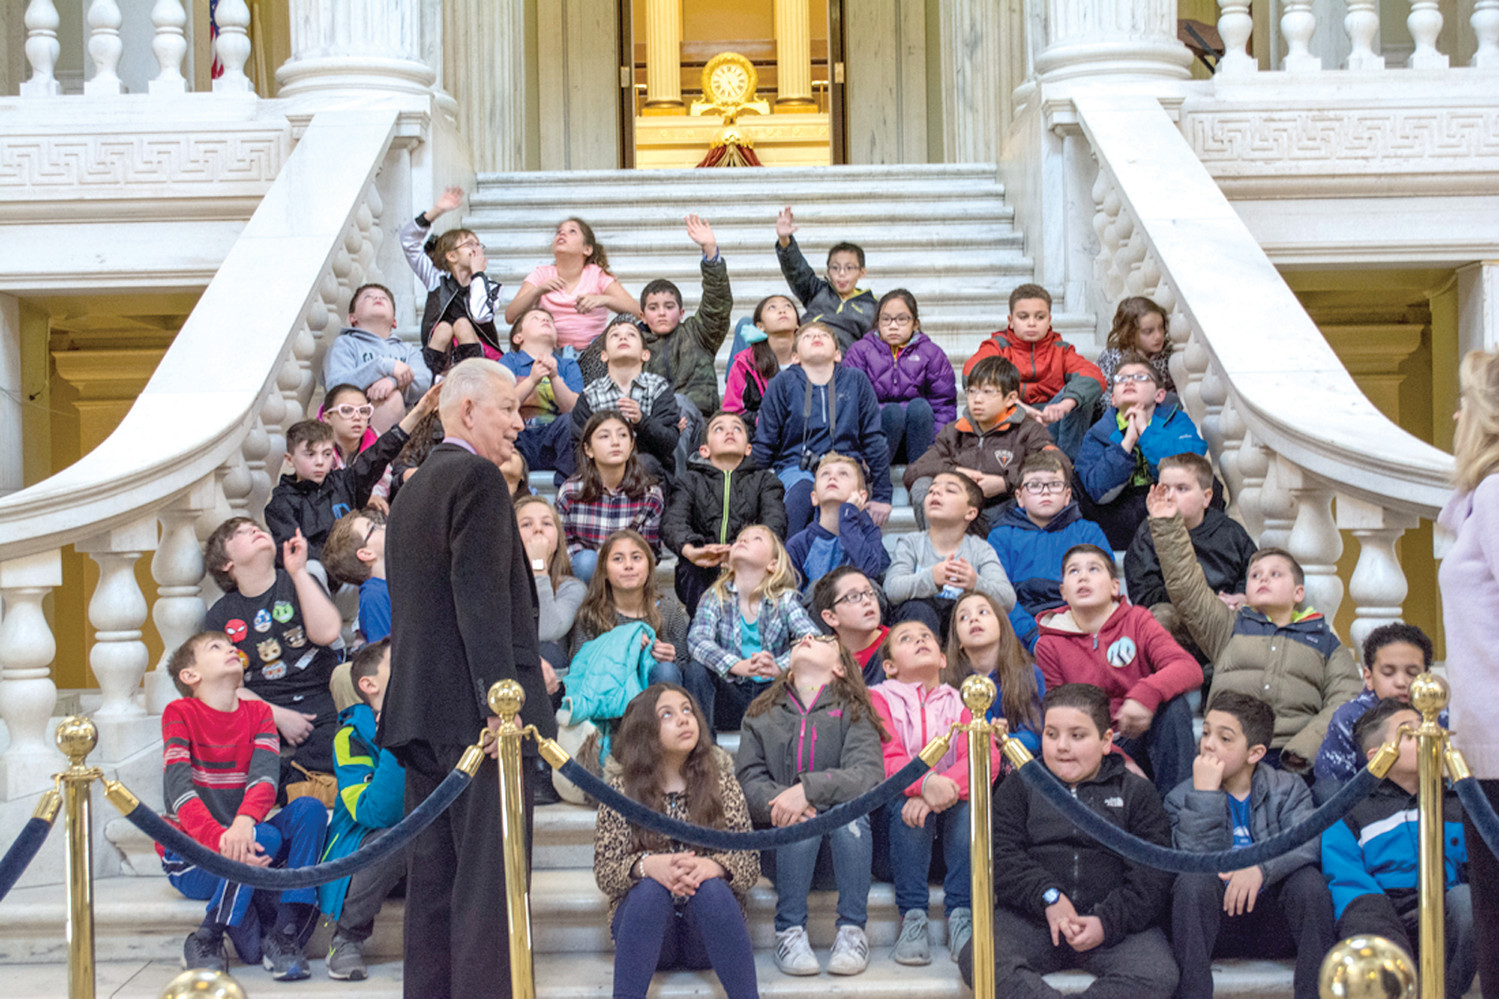 LINING THE STATE HOUSE STAIRS: The 44 students posed with Representative Lancia and his wife MaryAnn before they went off on their tours.